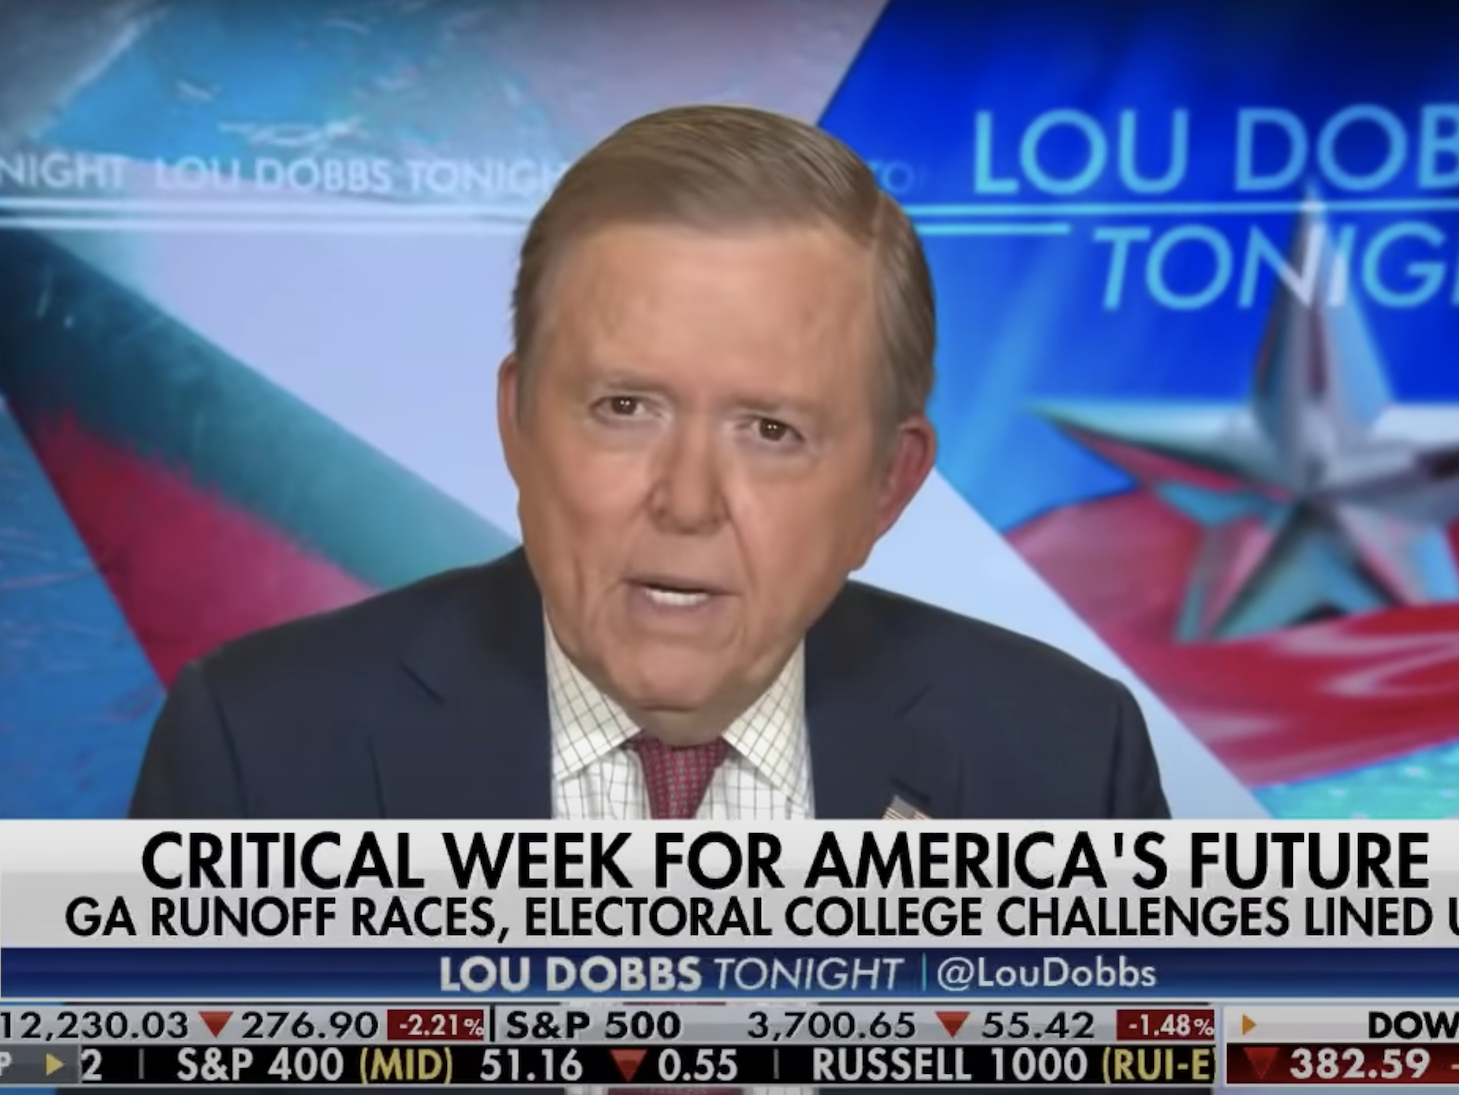 Fox host Lou Dobbs complained that he can't fetch 'precise proof' of voter fraud, but saved pushing the discredited principle anyway